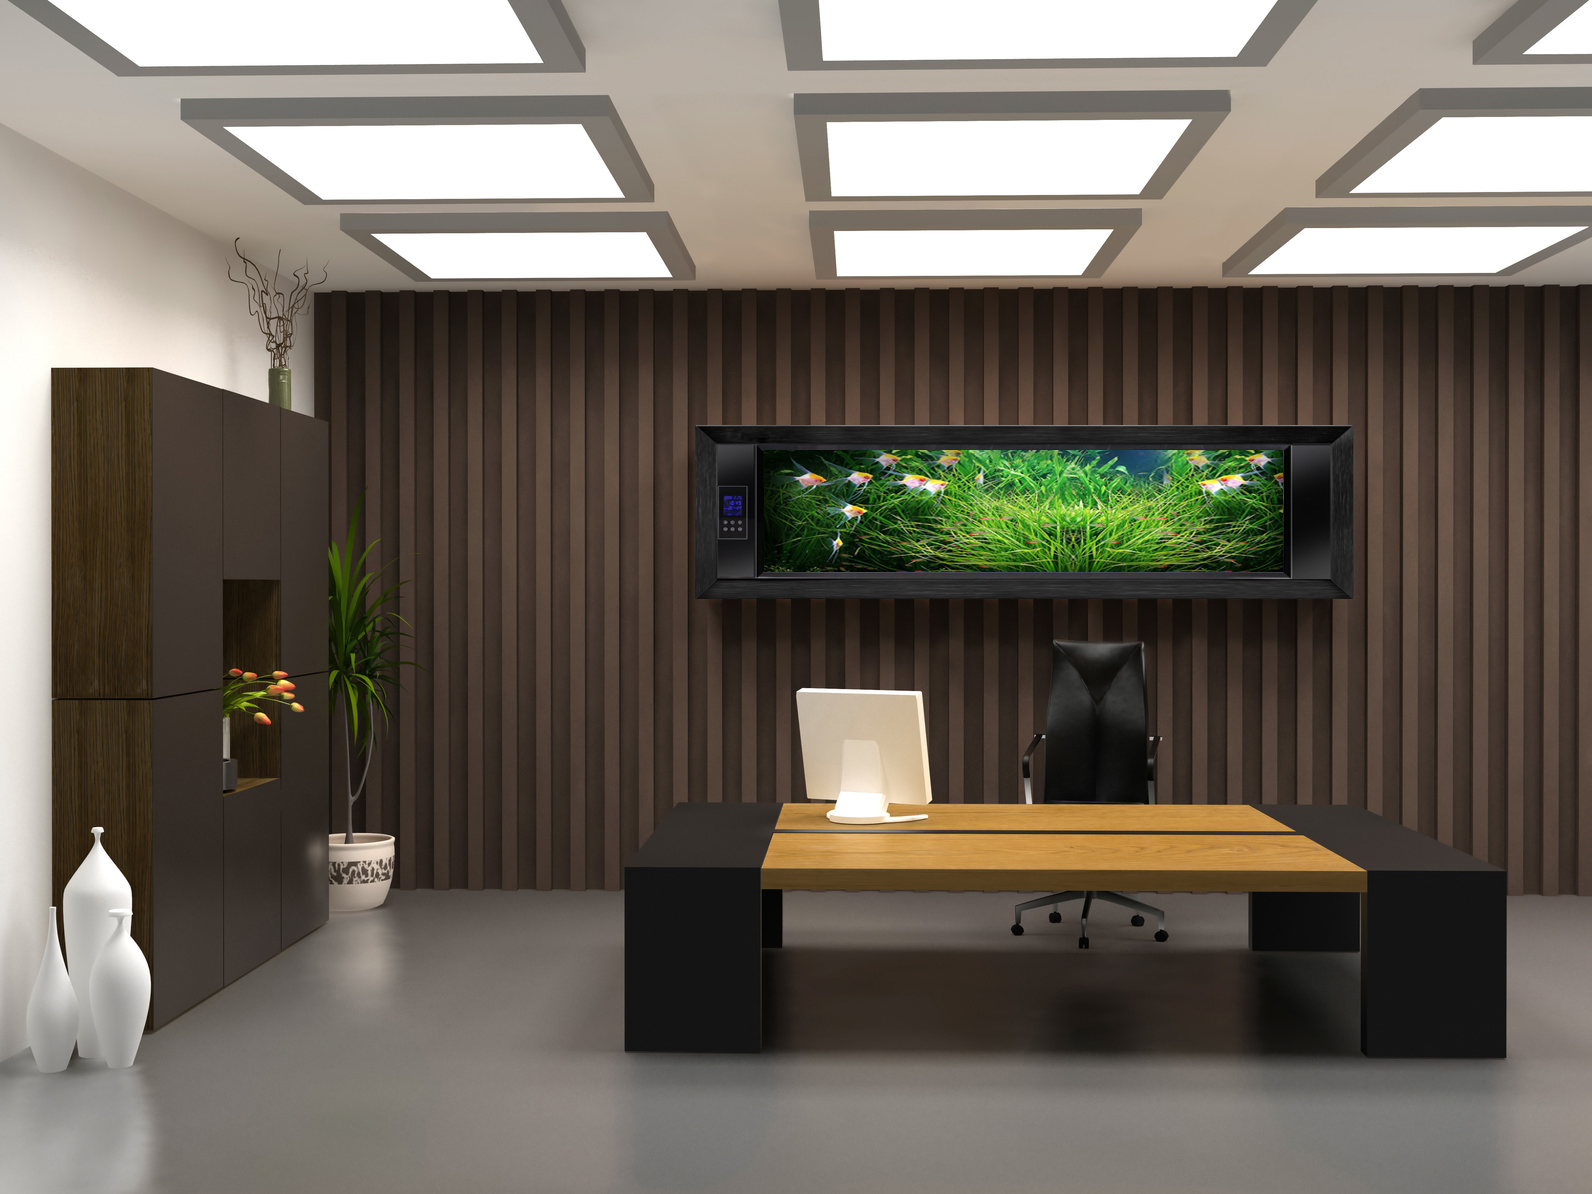 Elegant ceo office design bellisima for Contemporary office interior design